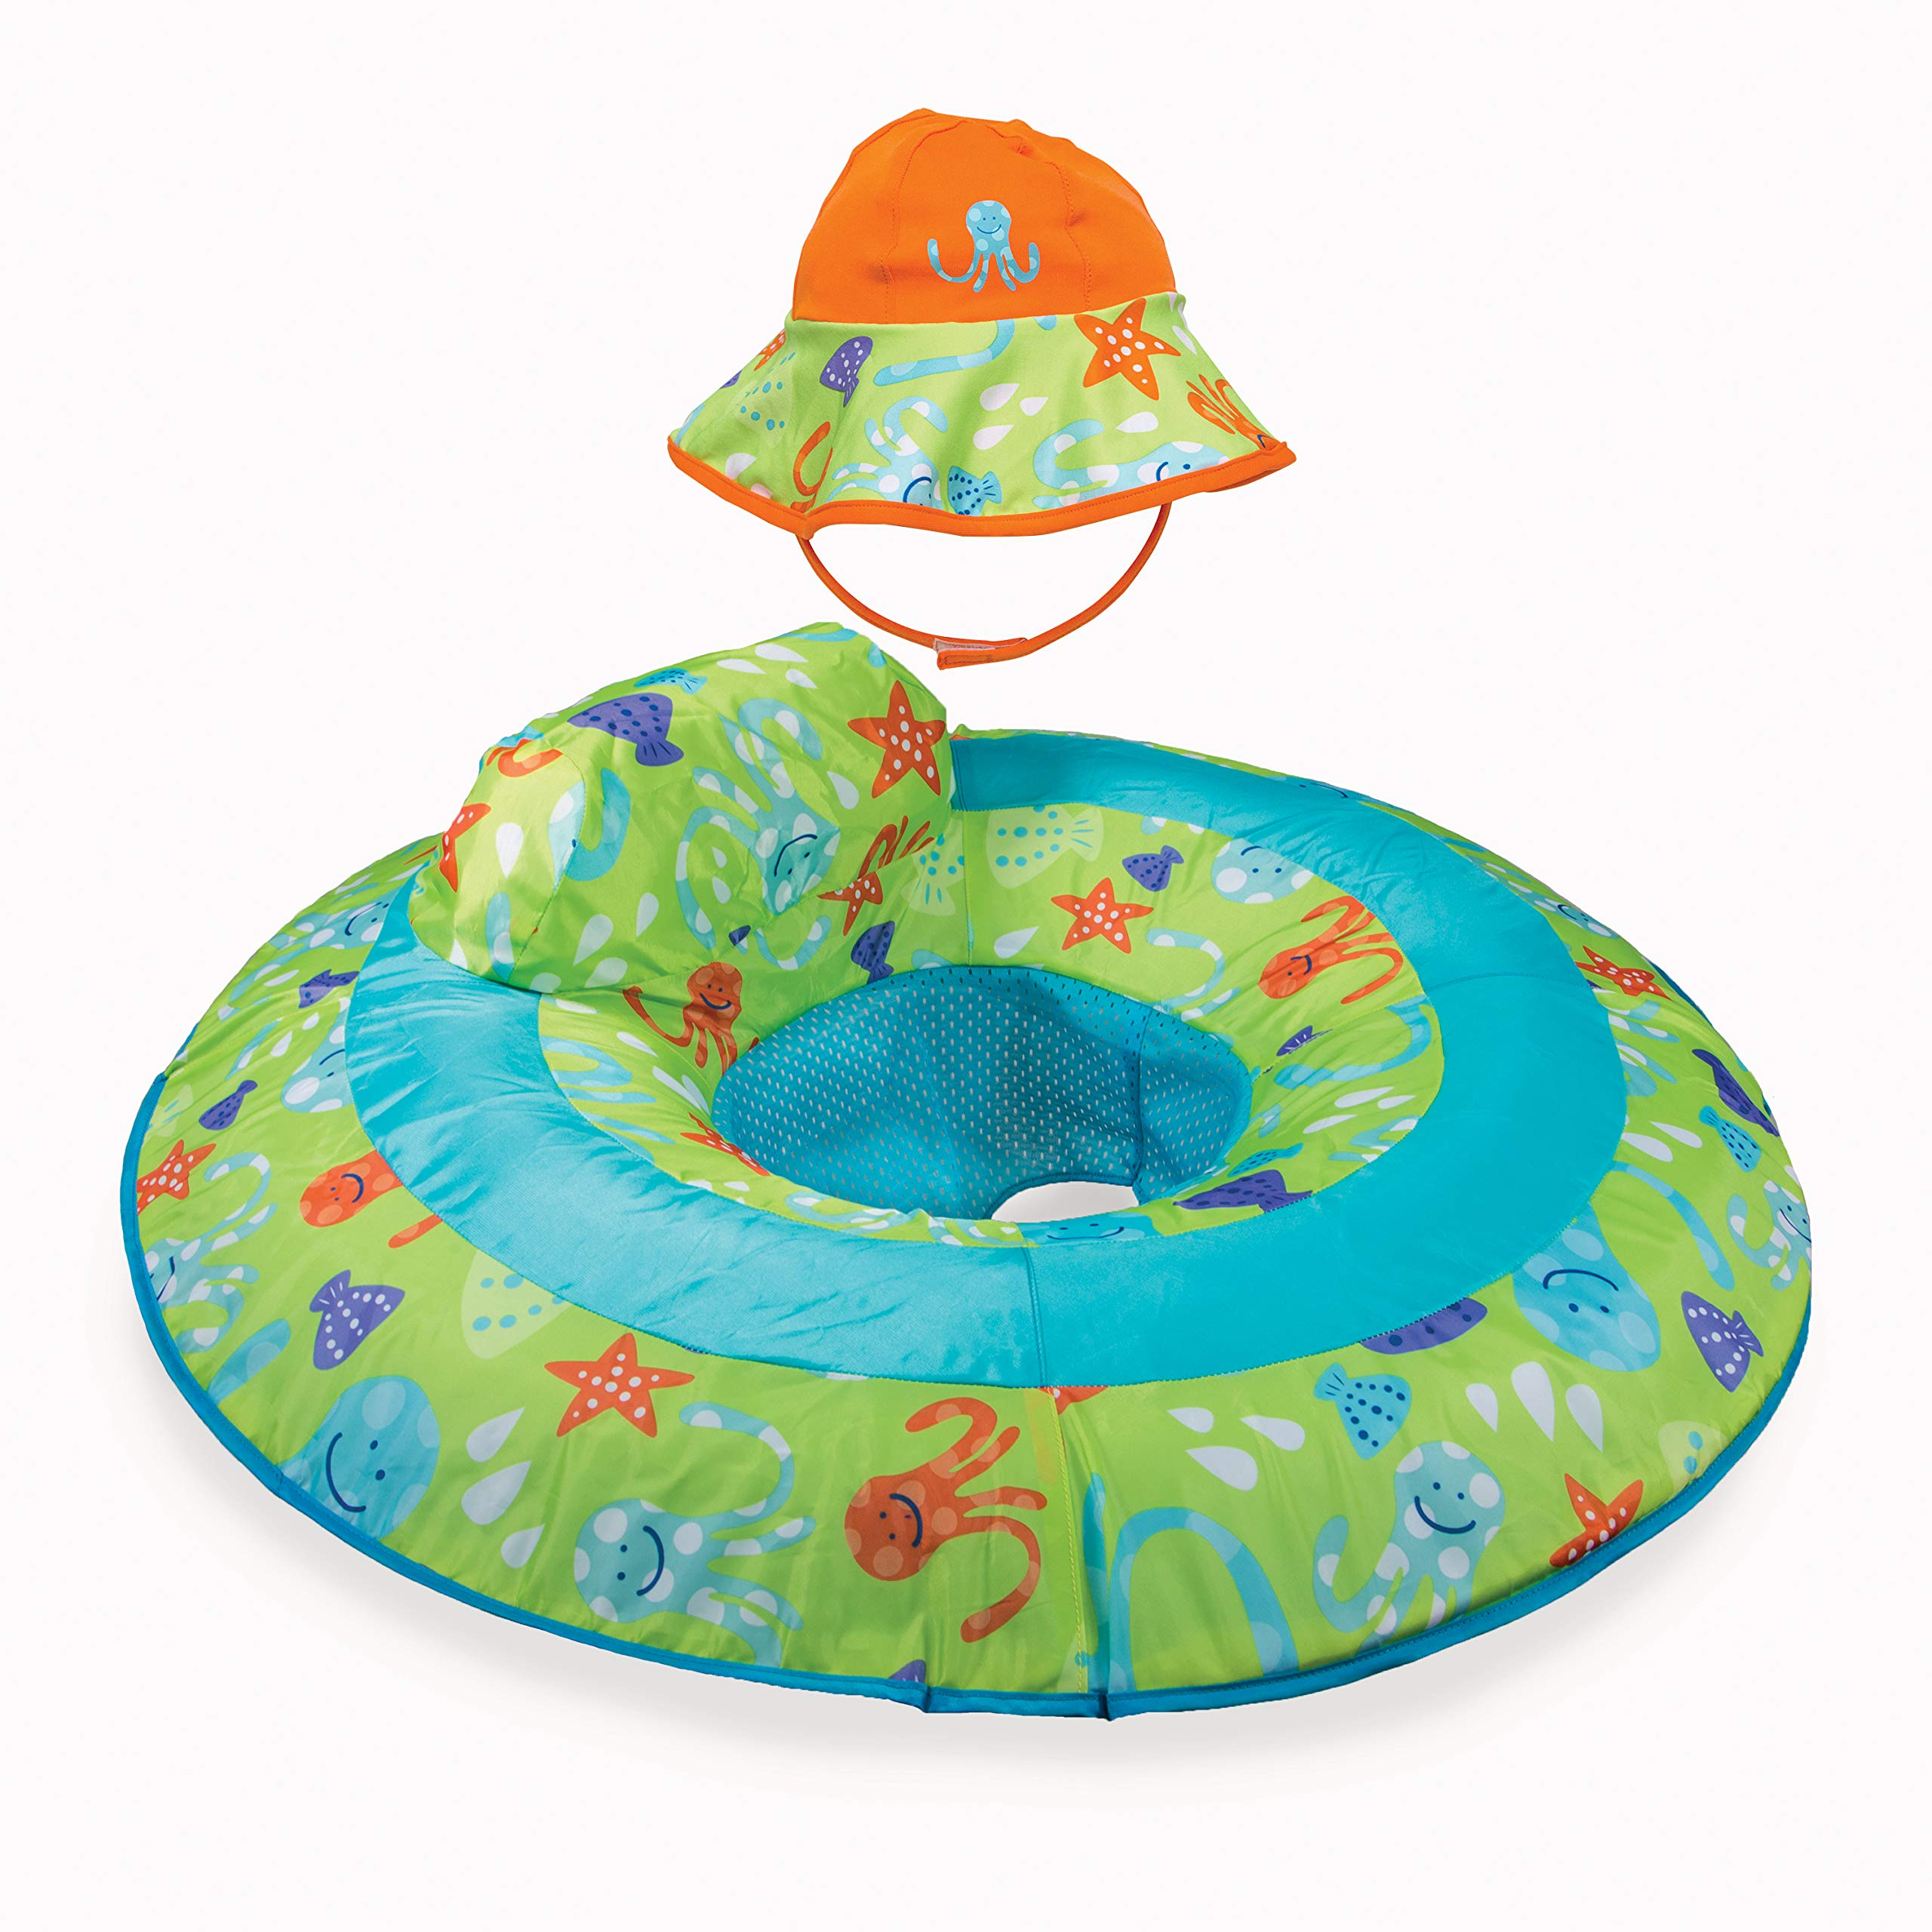 SwimWays Spring Float Graphic Prints Blue by JK